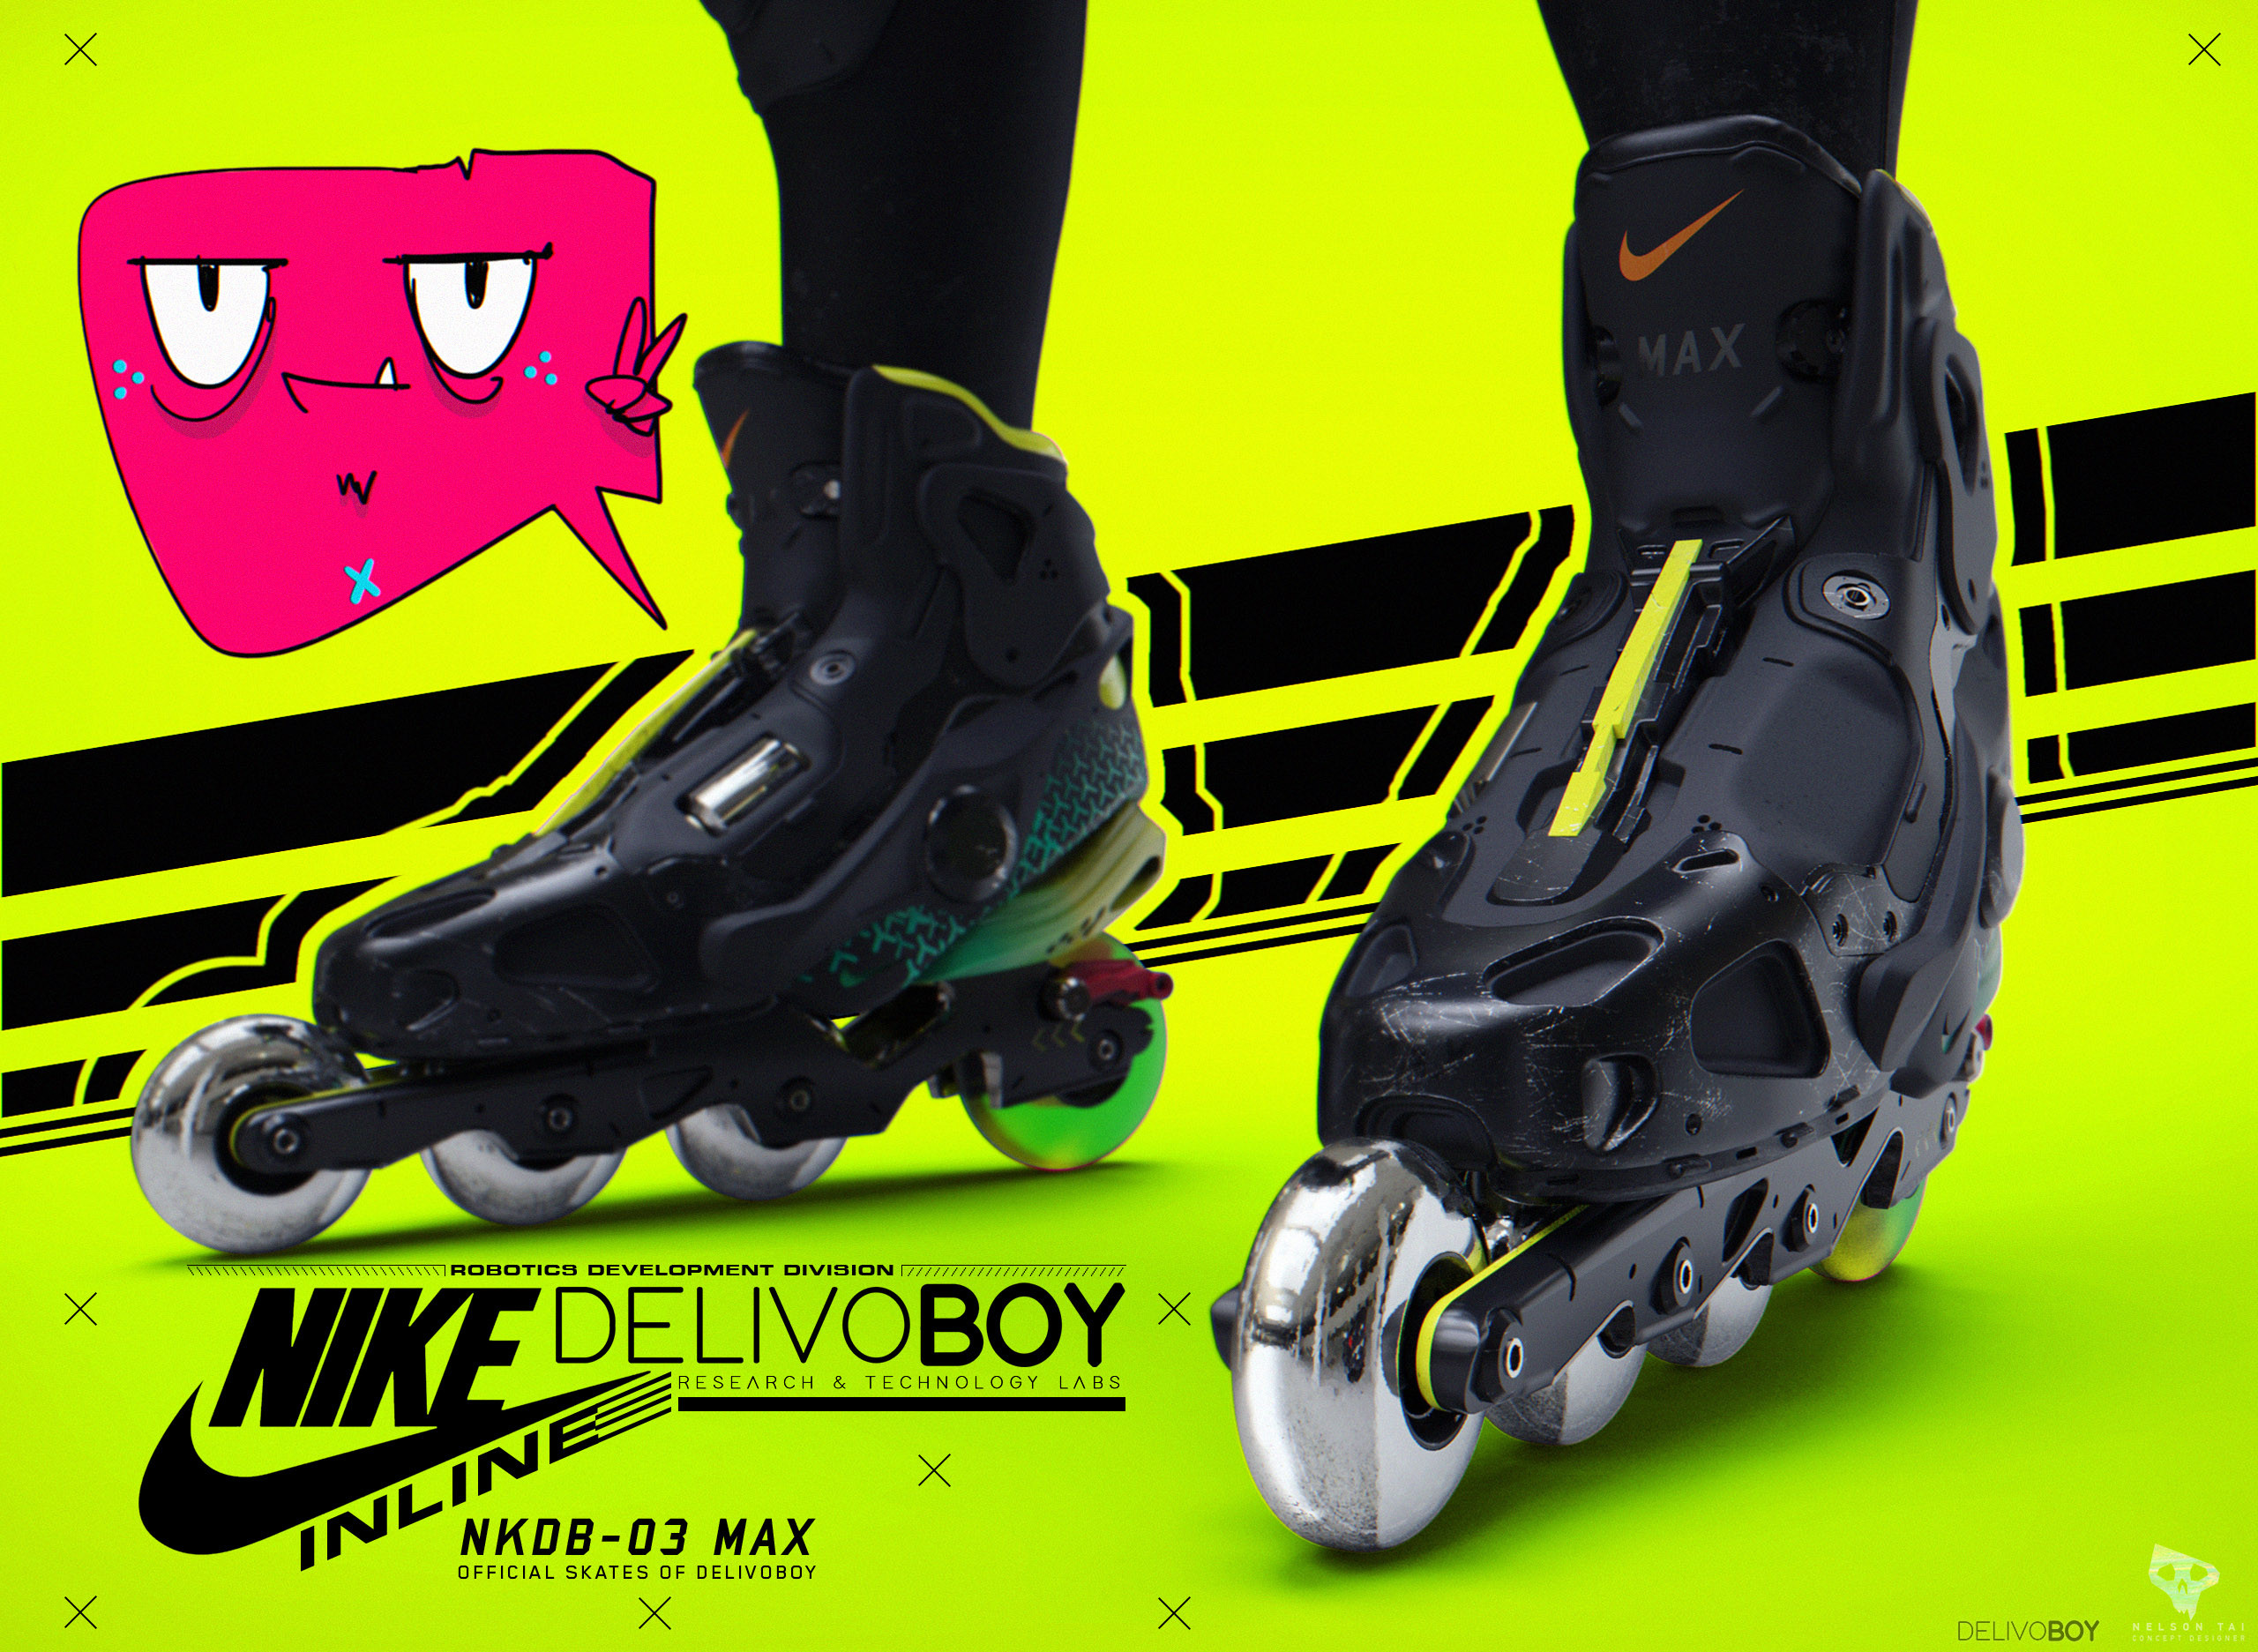 The Official Skates of DelivoBoy! DelivoCo. partnered with Nike to develop these advanced skates!